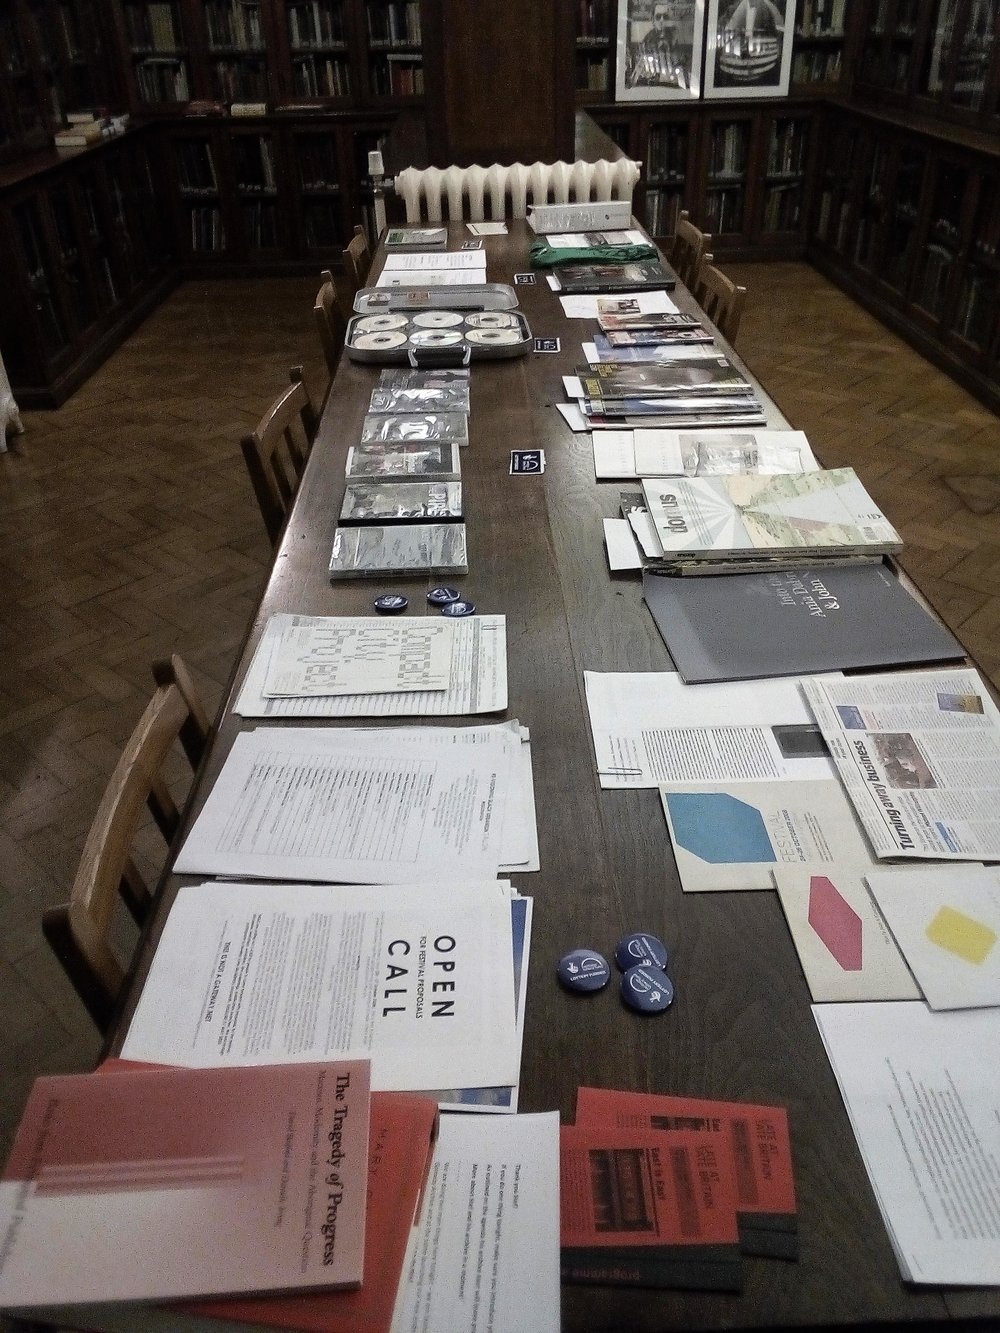 Some of the materials deposited in the This Is Not A Gateway Archive displayed for the Archive Launch at the Bishopsgate Institute. Over 60 films exhibited at This Is Not A Gateway Festivals or Salons have been deposited, including Gabriel Mascaro's films  House-Maids and High-Rise.